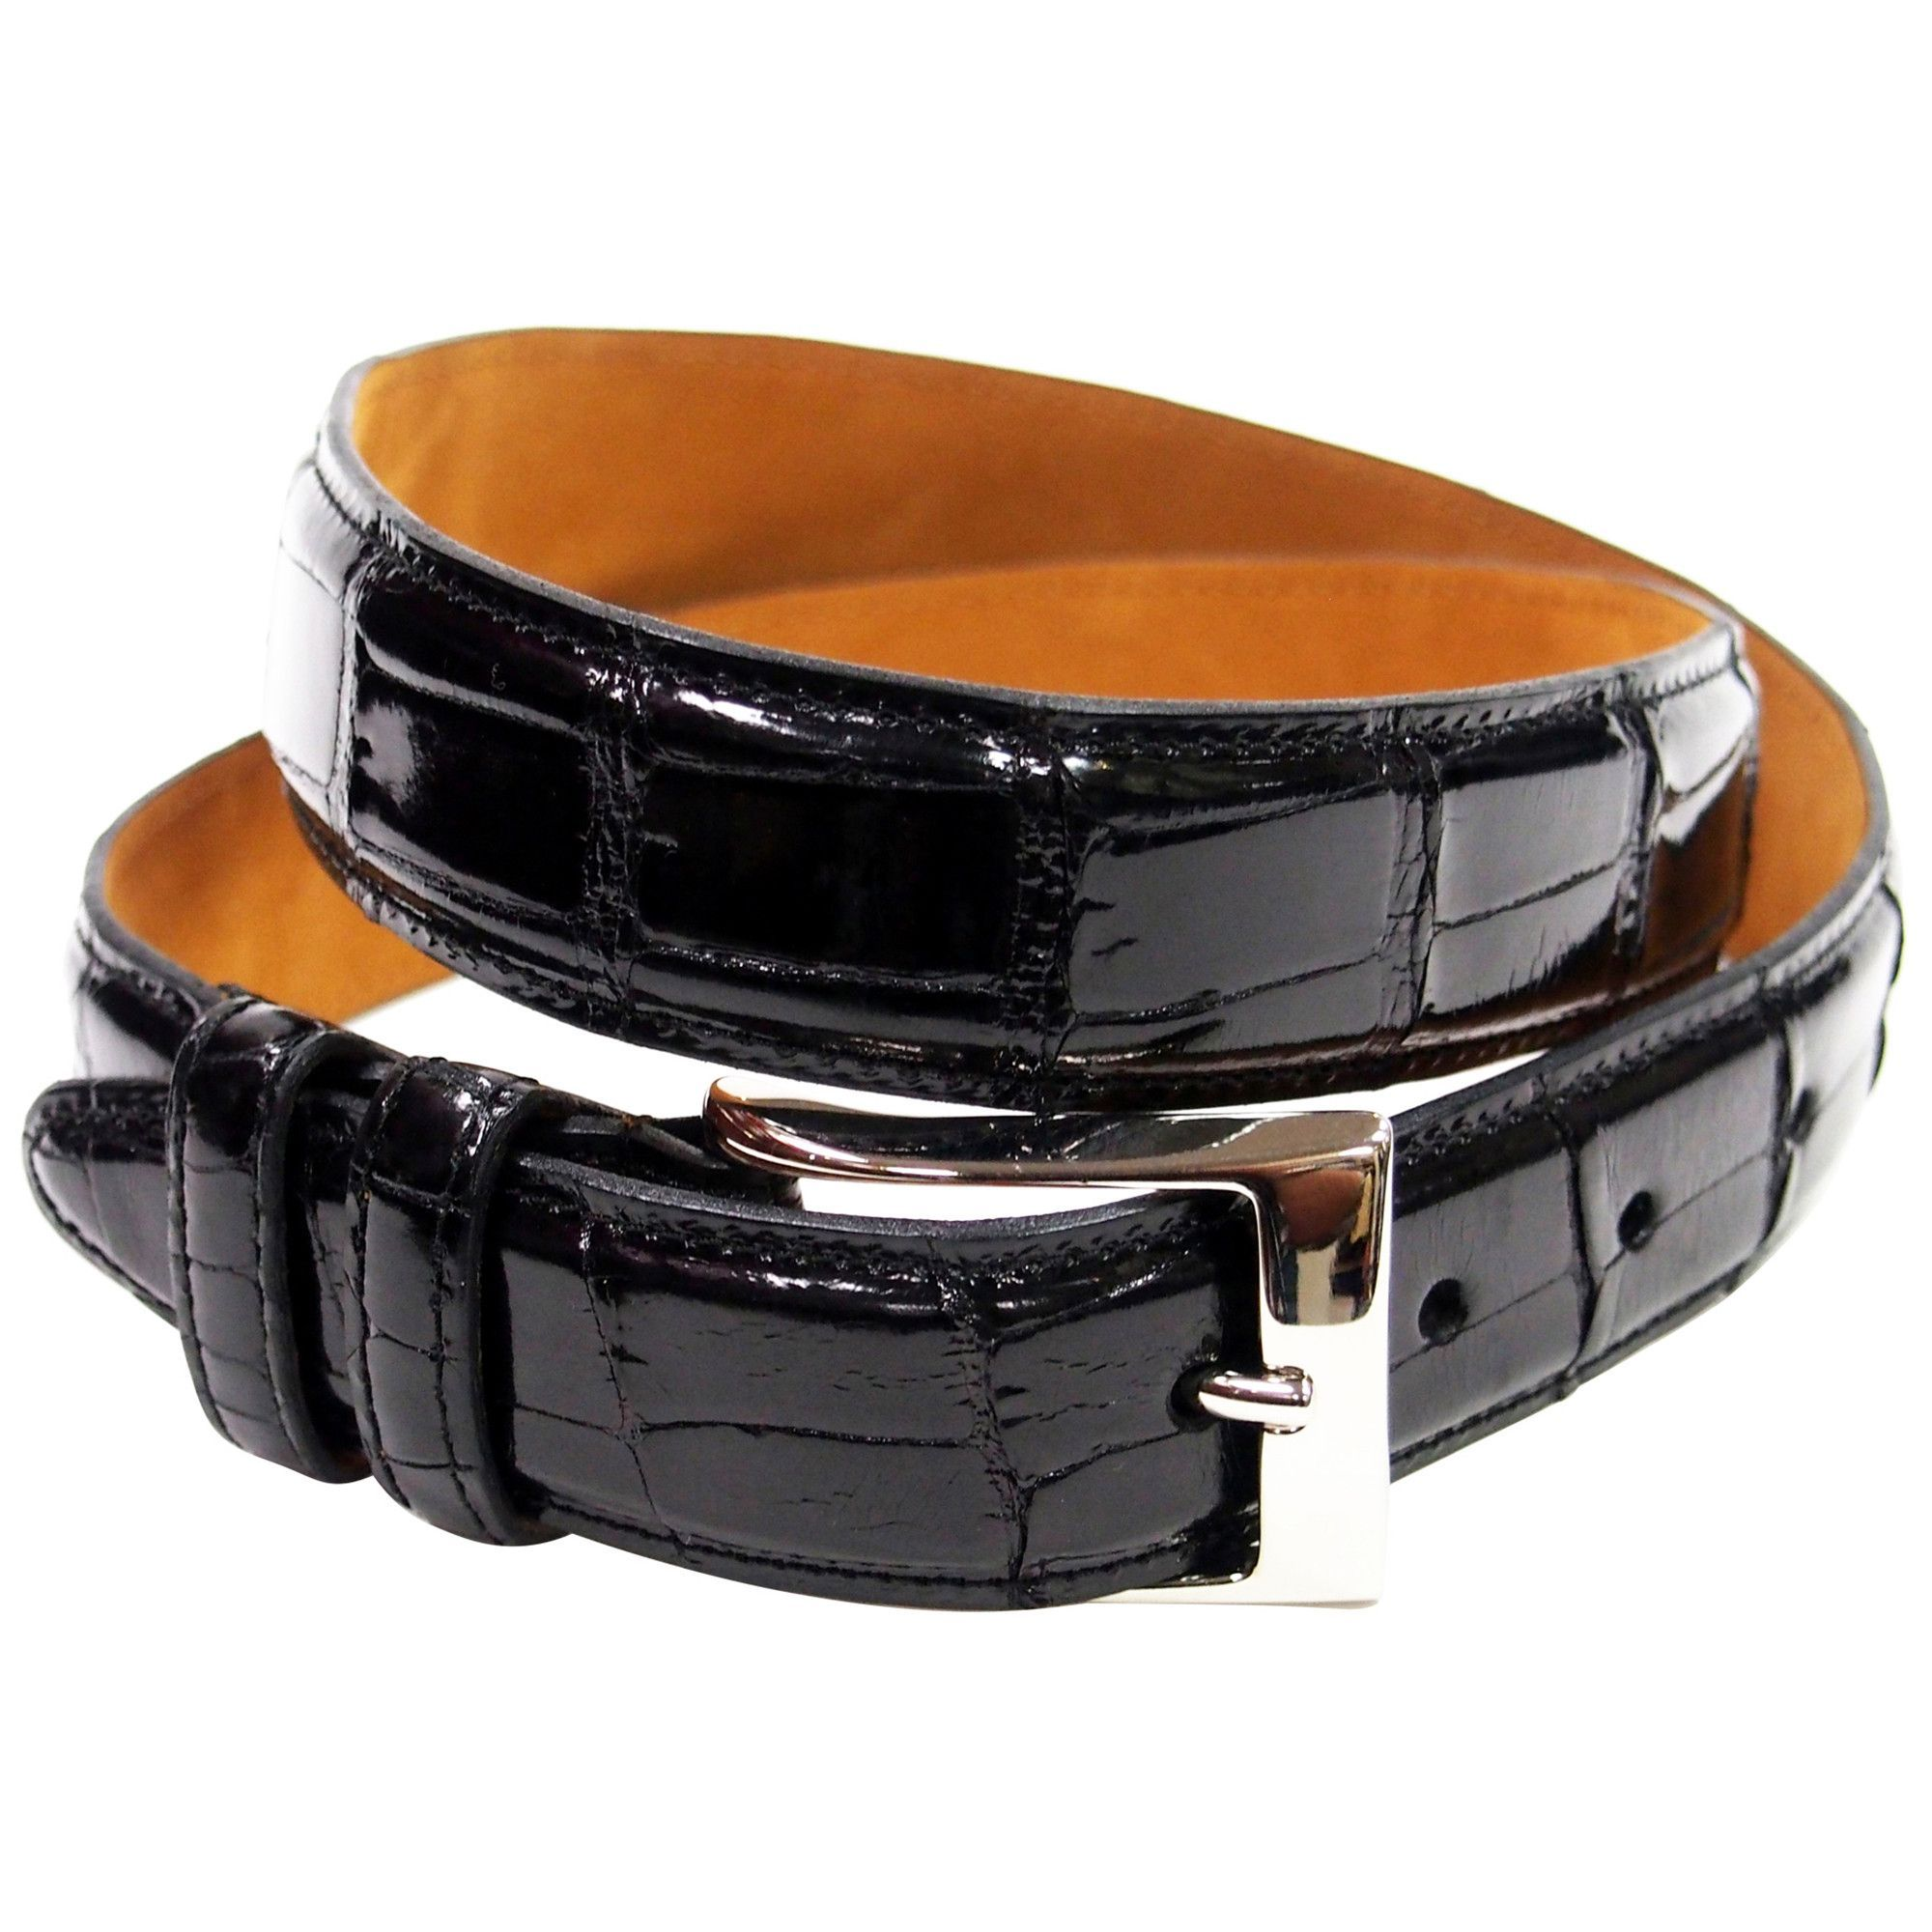 Genuine Black Alligator Leather Belt with Sterling Silver Buckle Made in U.S.A